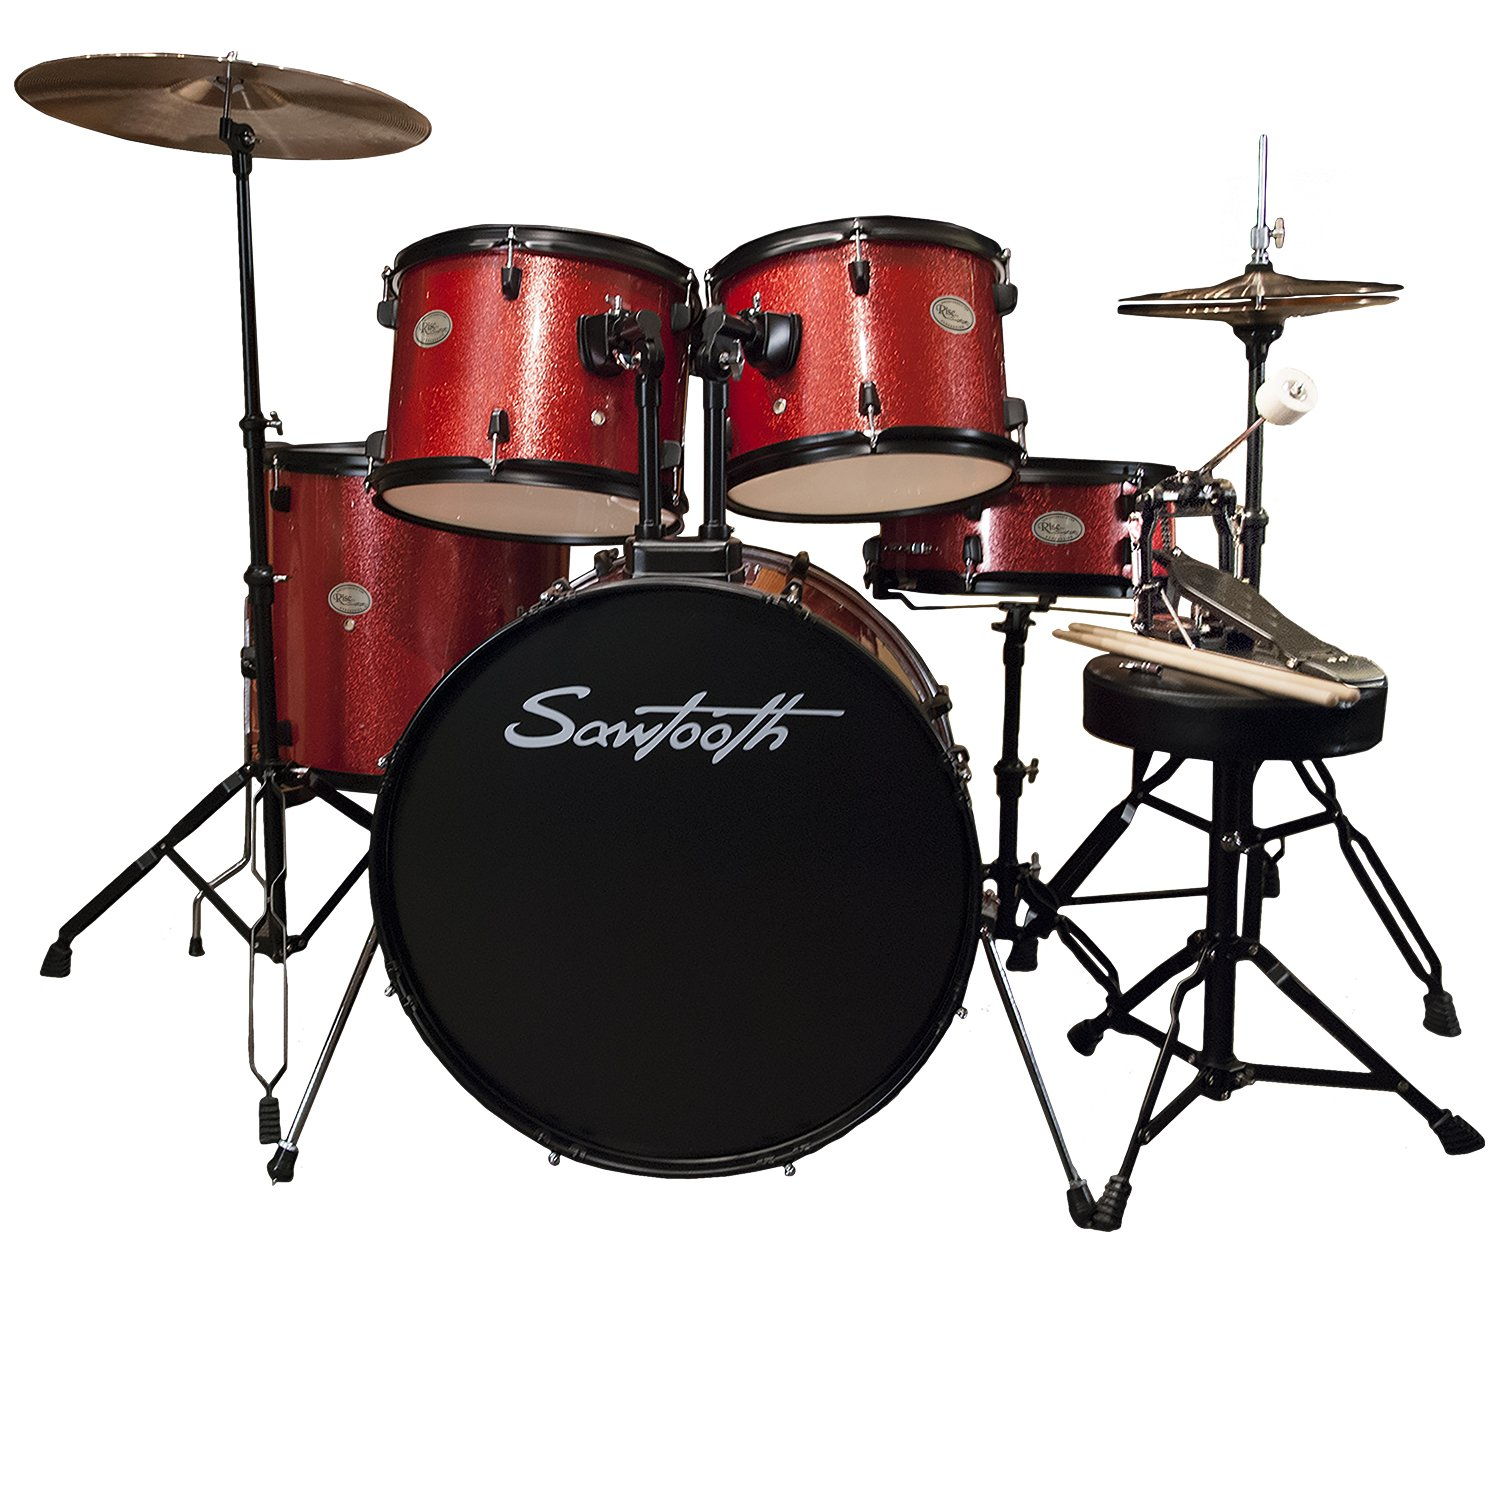 Rise by Sawtooth Full Size Student Drum Set with Hardware and Cymbals, Storm Blue Sparkle GO-DPS ST-RISE-DS-BS